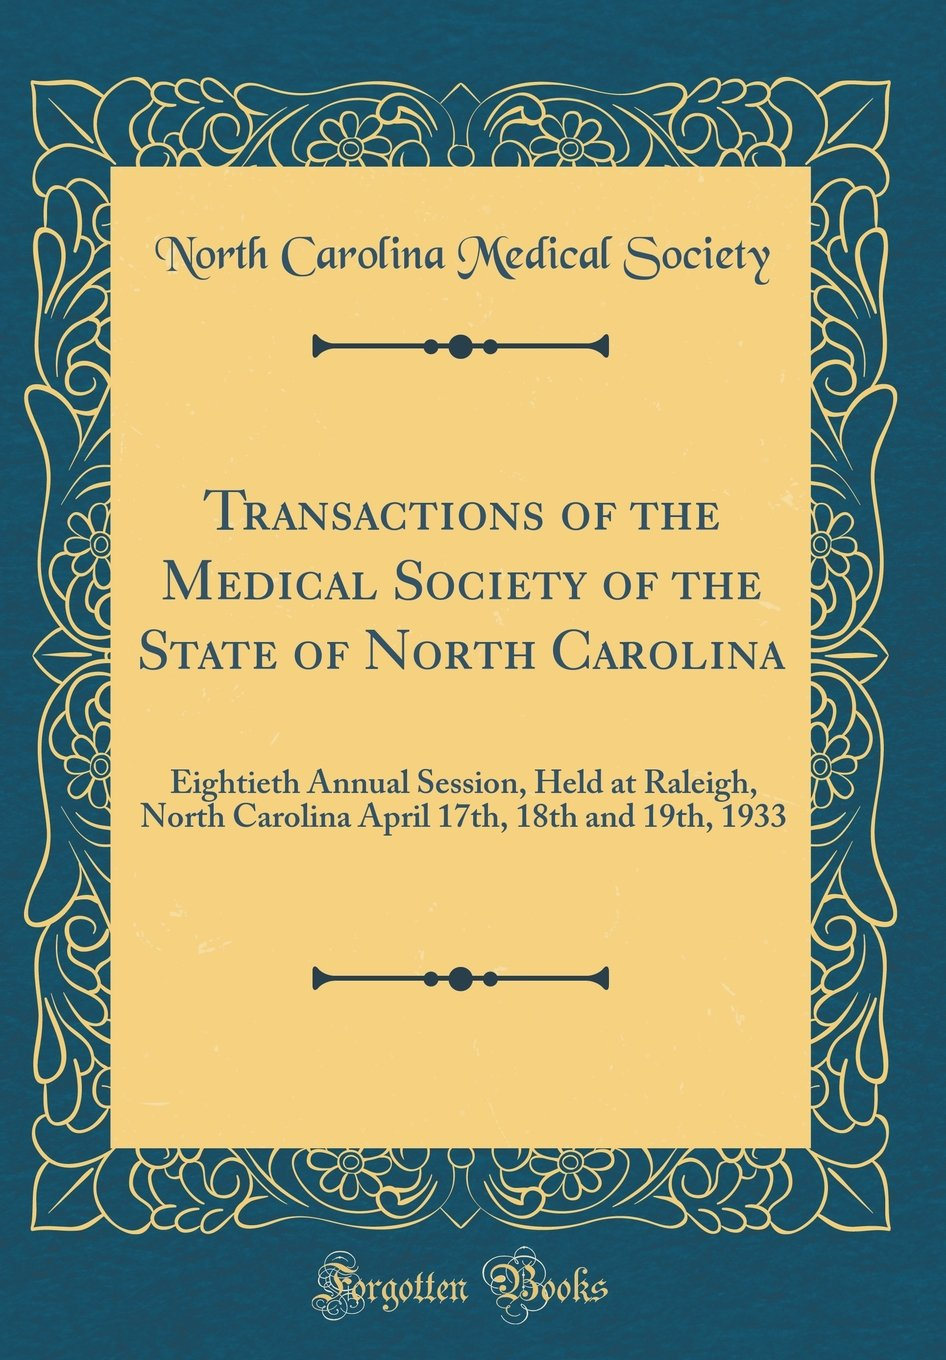 Transactions of the Medical Society of the State of North Carolina: Eightieth Annual Session, Held at Raleigh, North Carolina April 17th, 18th and 19th, 1933 (Classic Reprint) ebook